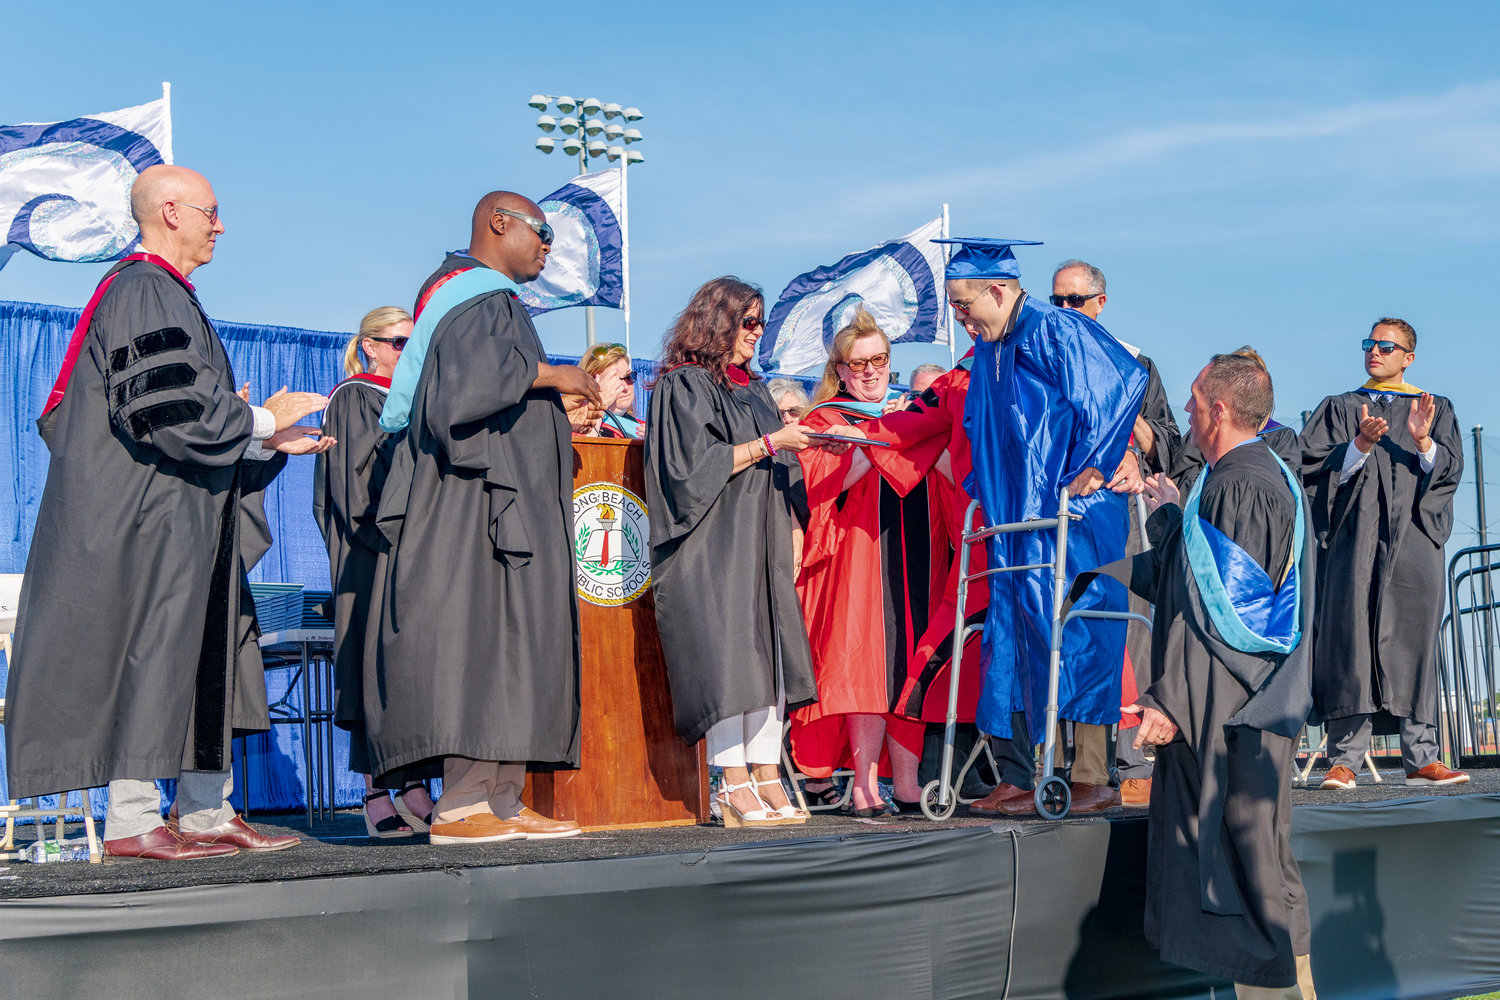 Long Beach High School Robert Browne, 18, who was paralyzed in a surfing accident in 2014, received a standing ovation on June 26 when he left his wheelchair to walk across the stage and received his diploma.